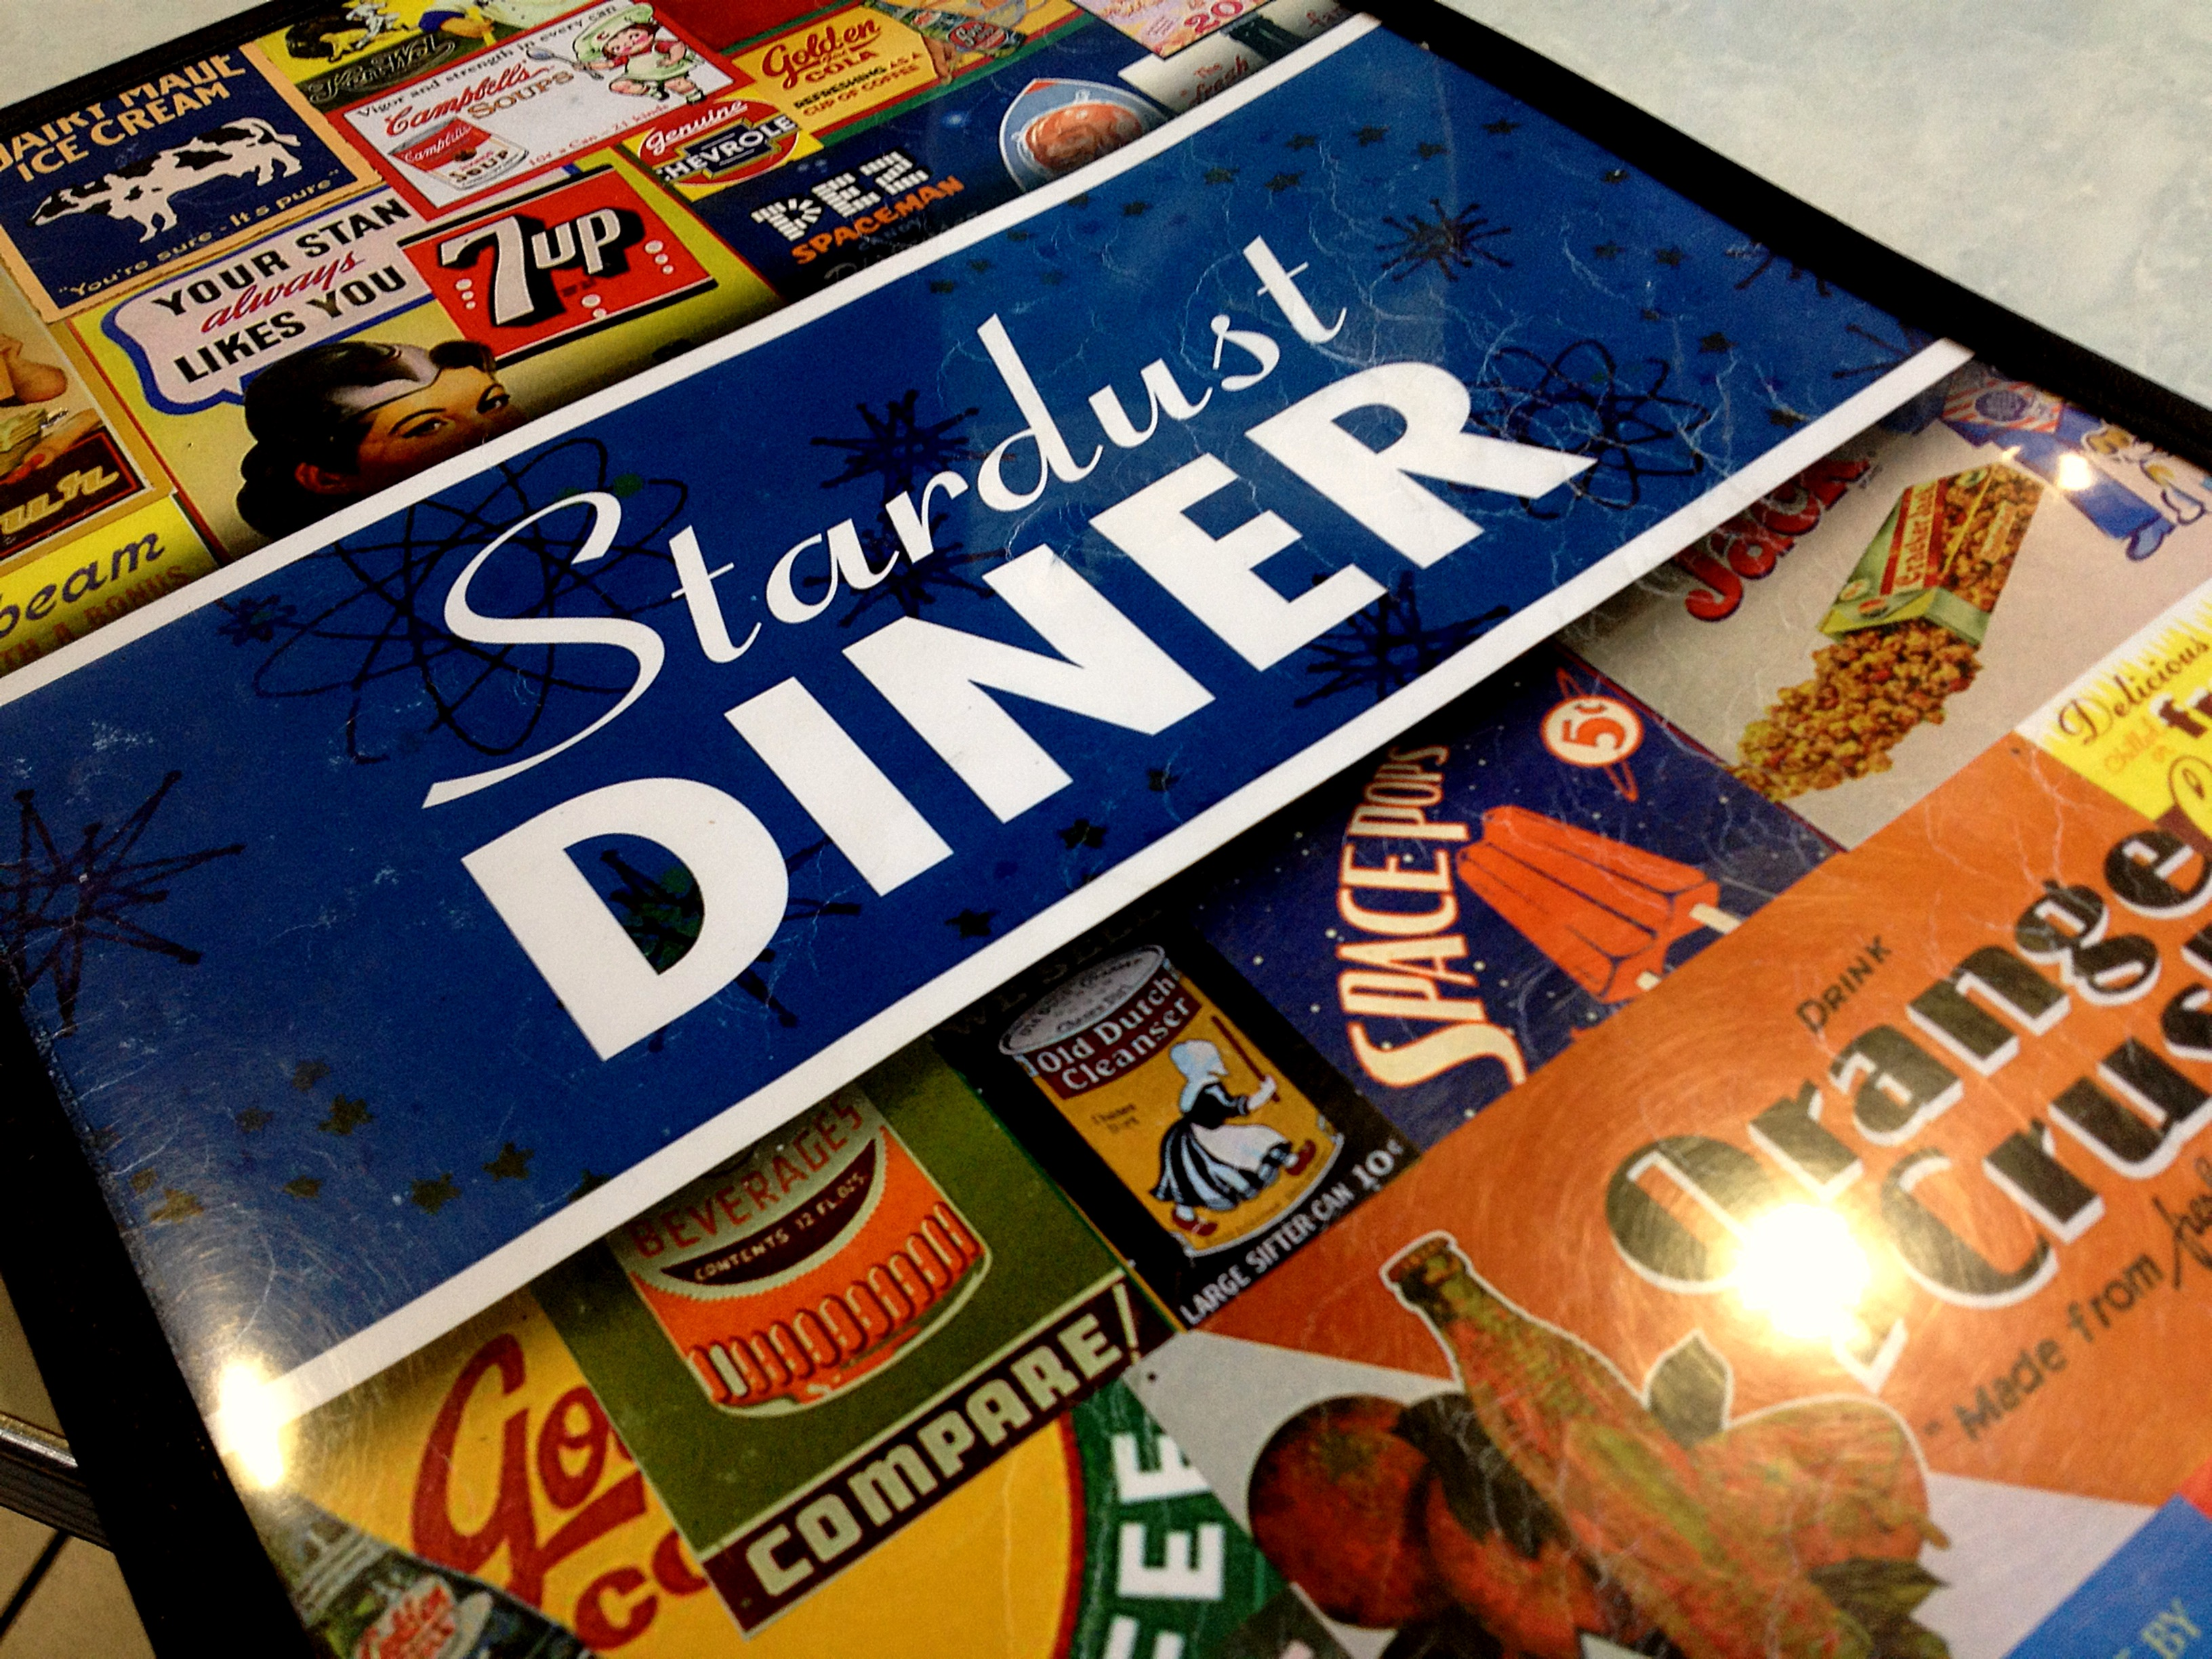 Stardust Diner Menu Cover